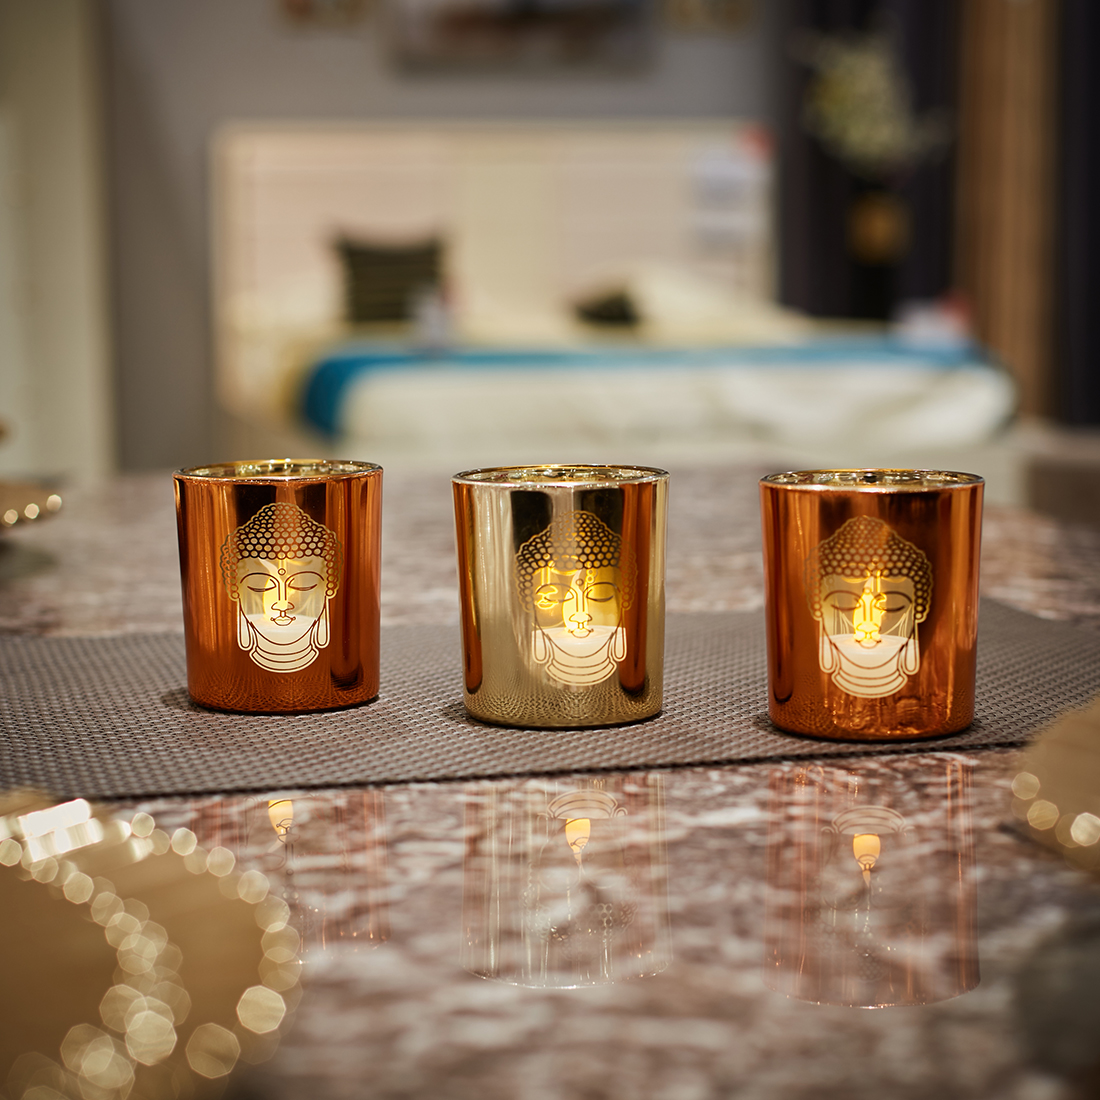 Zahara Set Of 3 Buddha Face Glass Candle Holders in ORANGE GOLD Colour by Living Essence